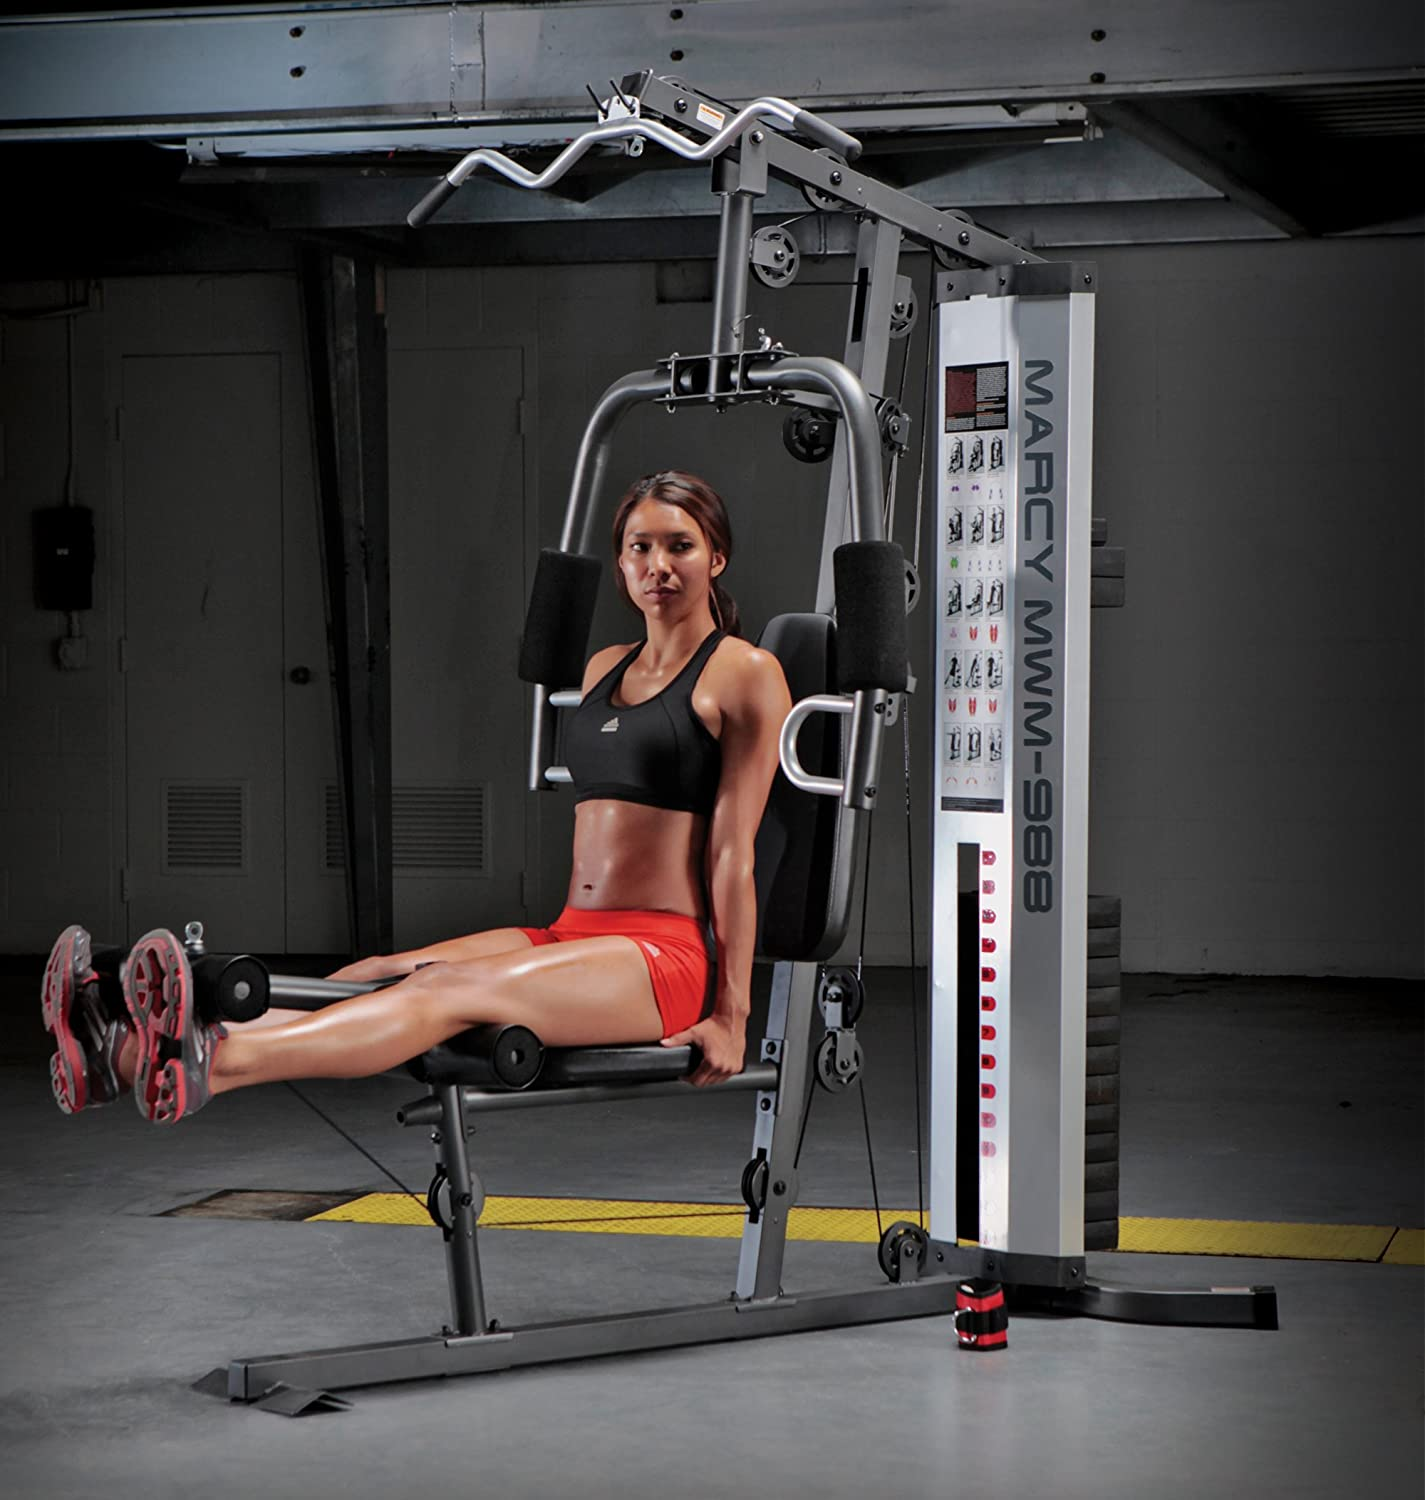 Xtreme Fitness Equipment Newton: Marcy Multifunction Steel Home Gym 150lb Workout Equipment